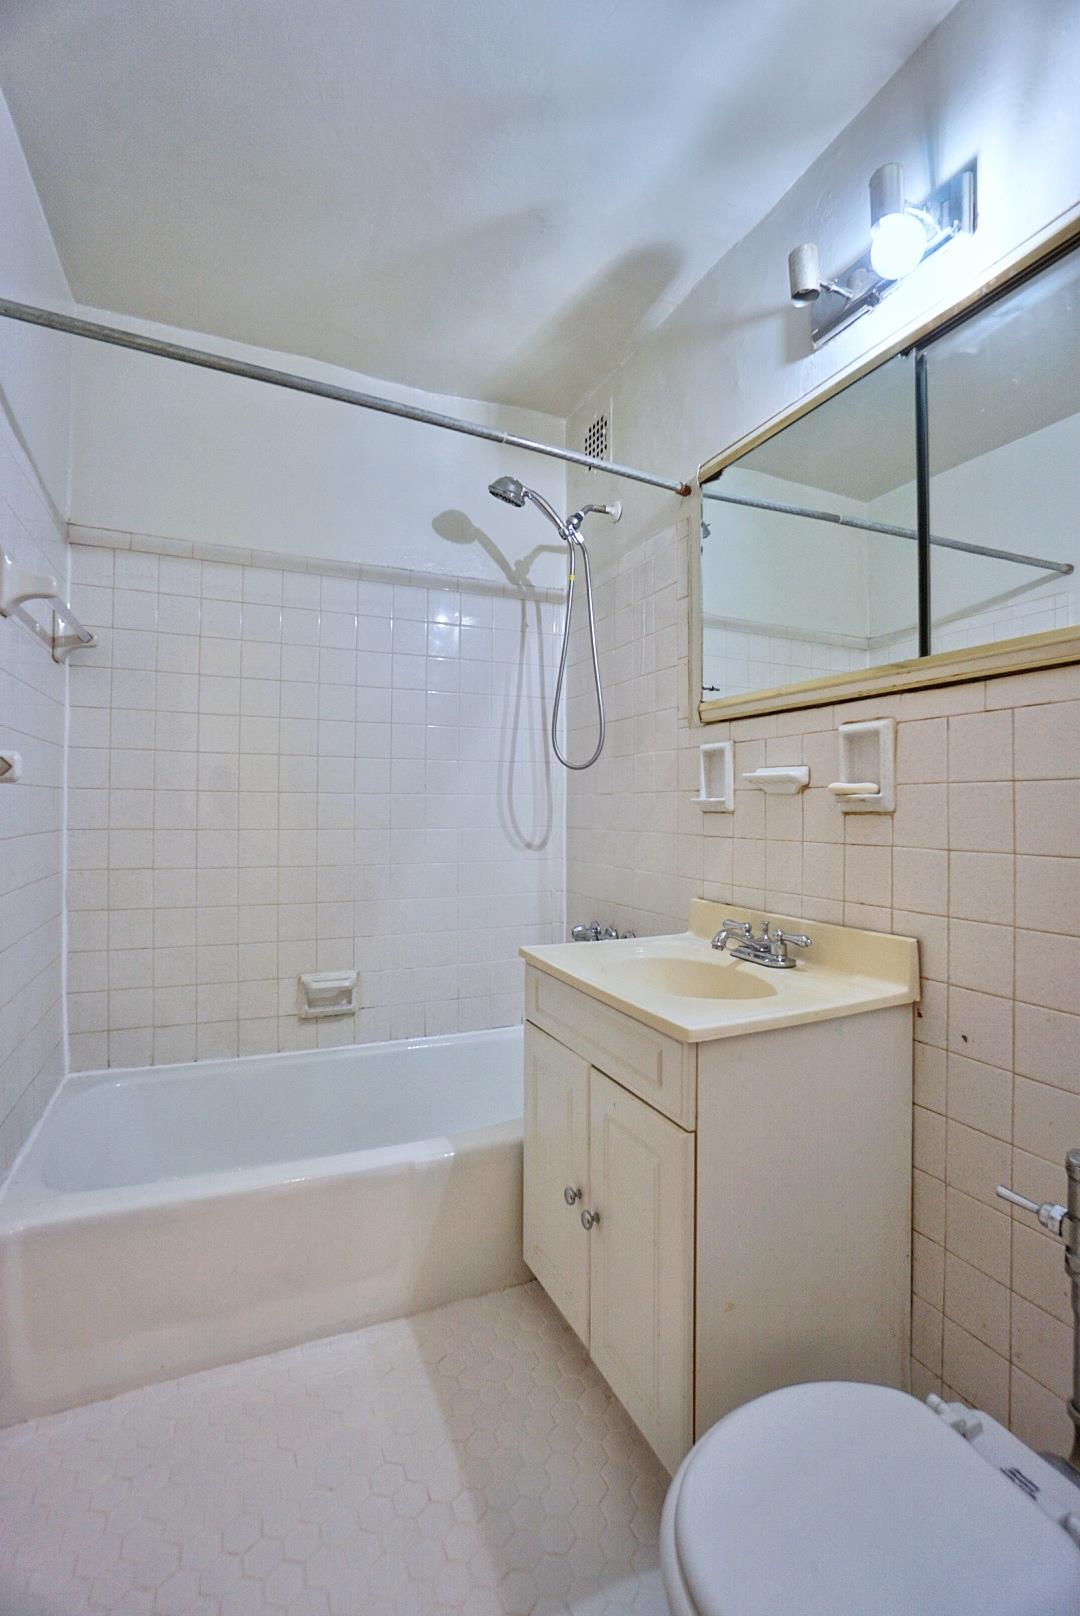 Apartment for sale at 1200 East 53rd Street, Apt 5-F